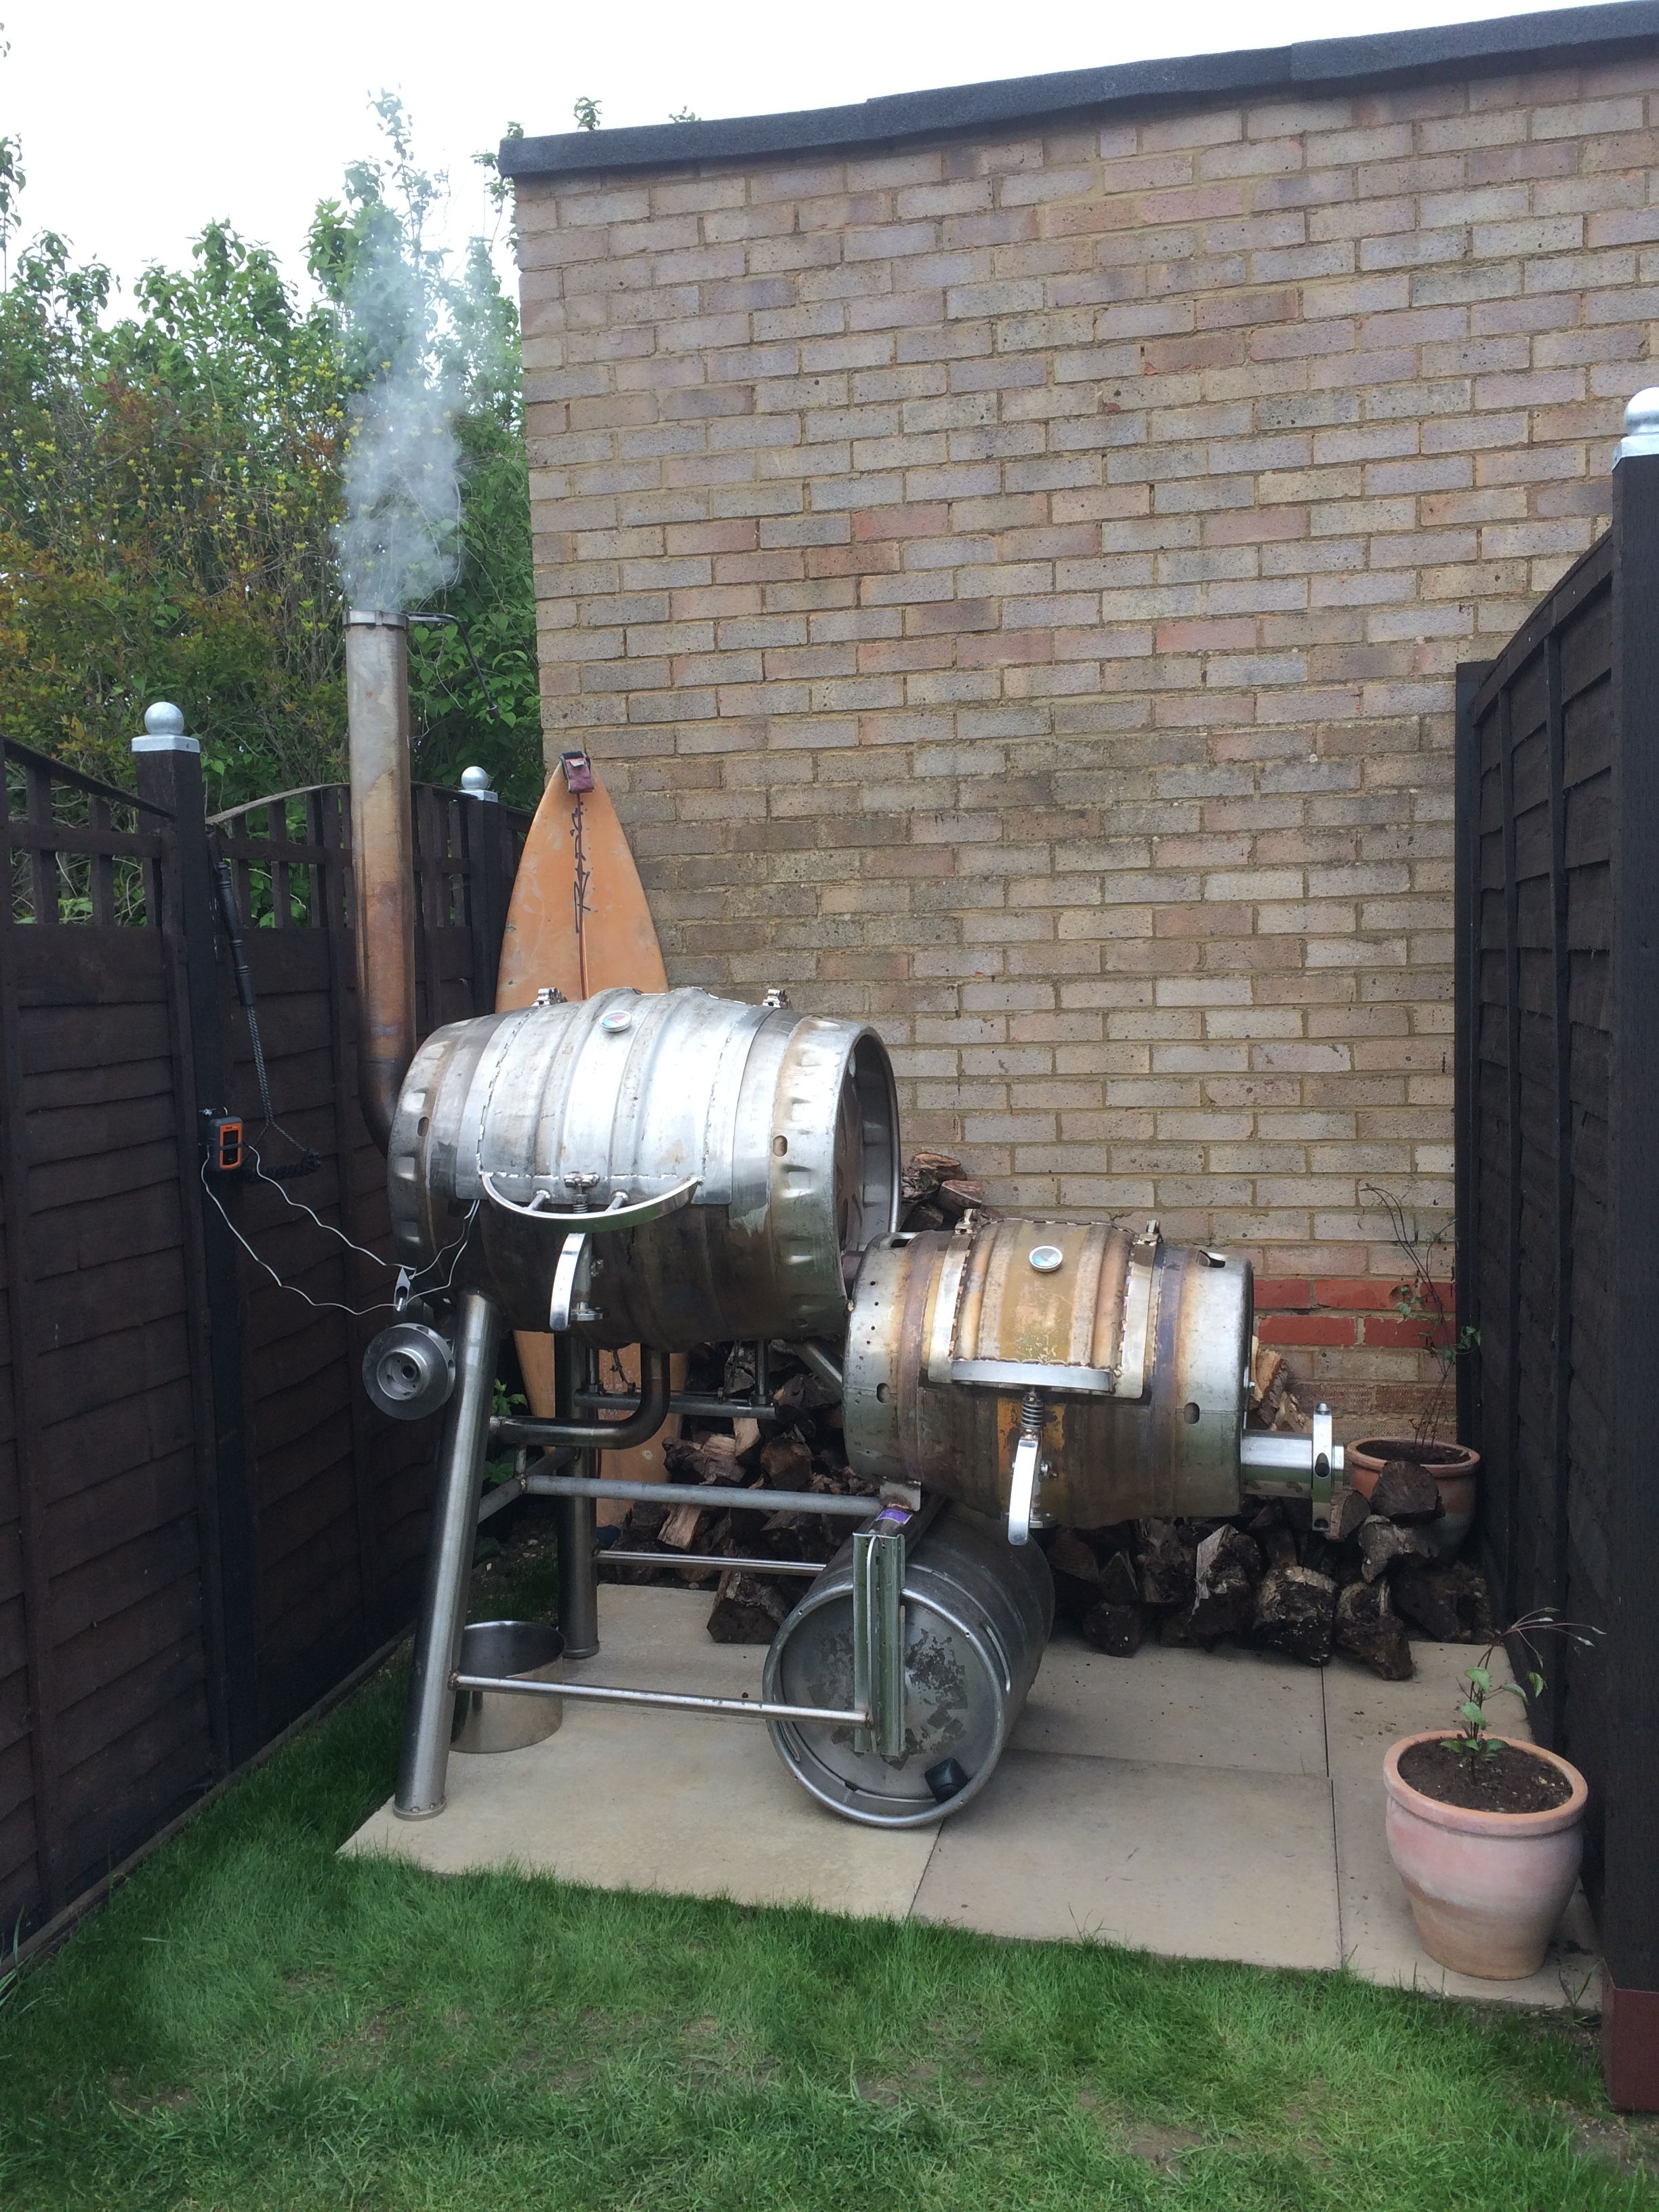 Pin von Doug Glazer auf wine barrel smoker | Pinterest